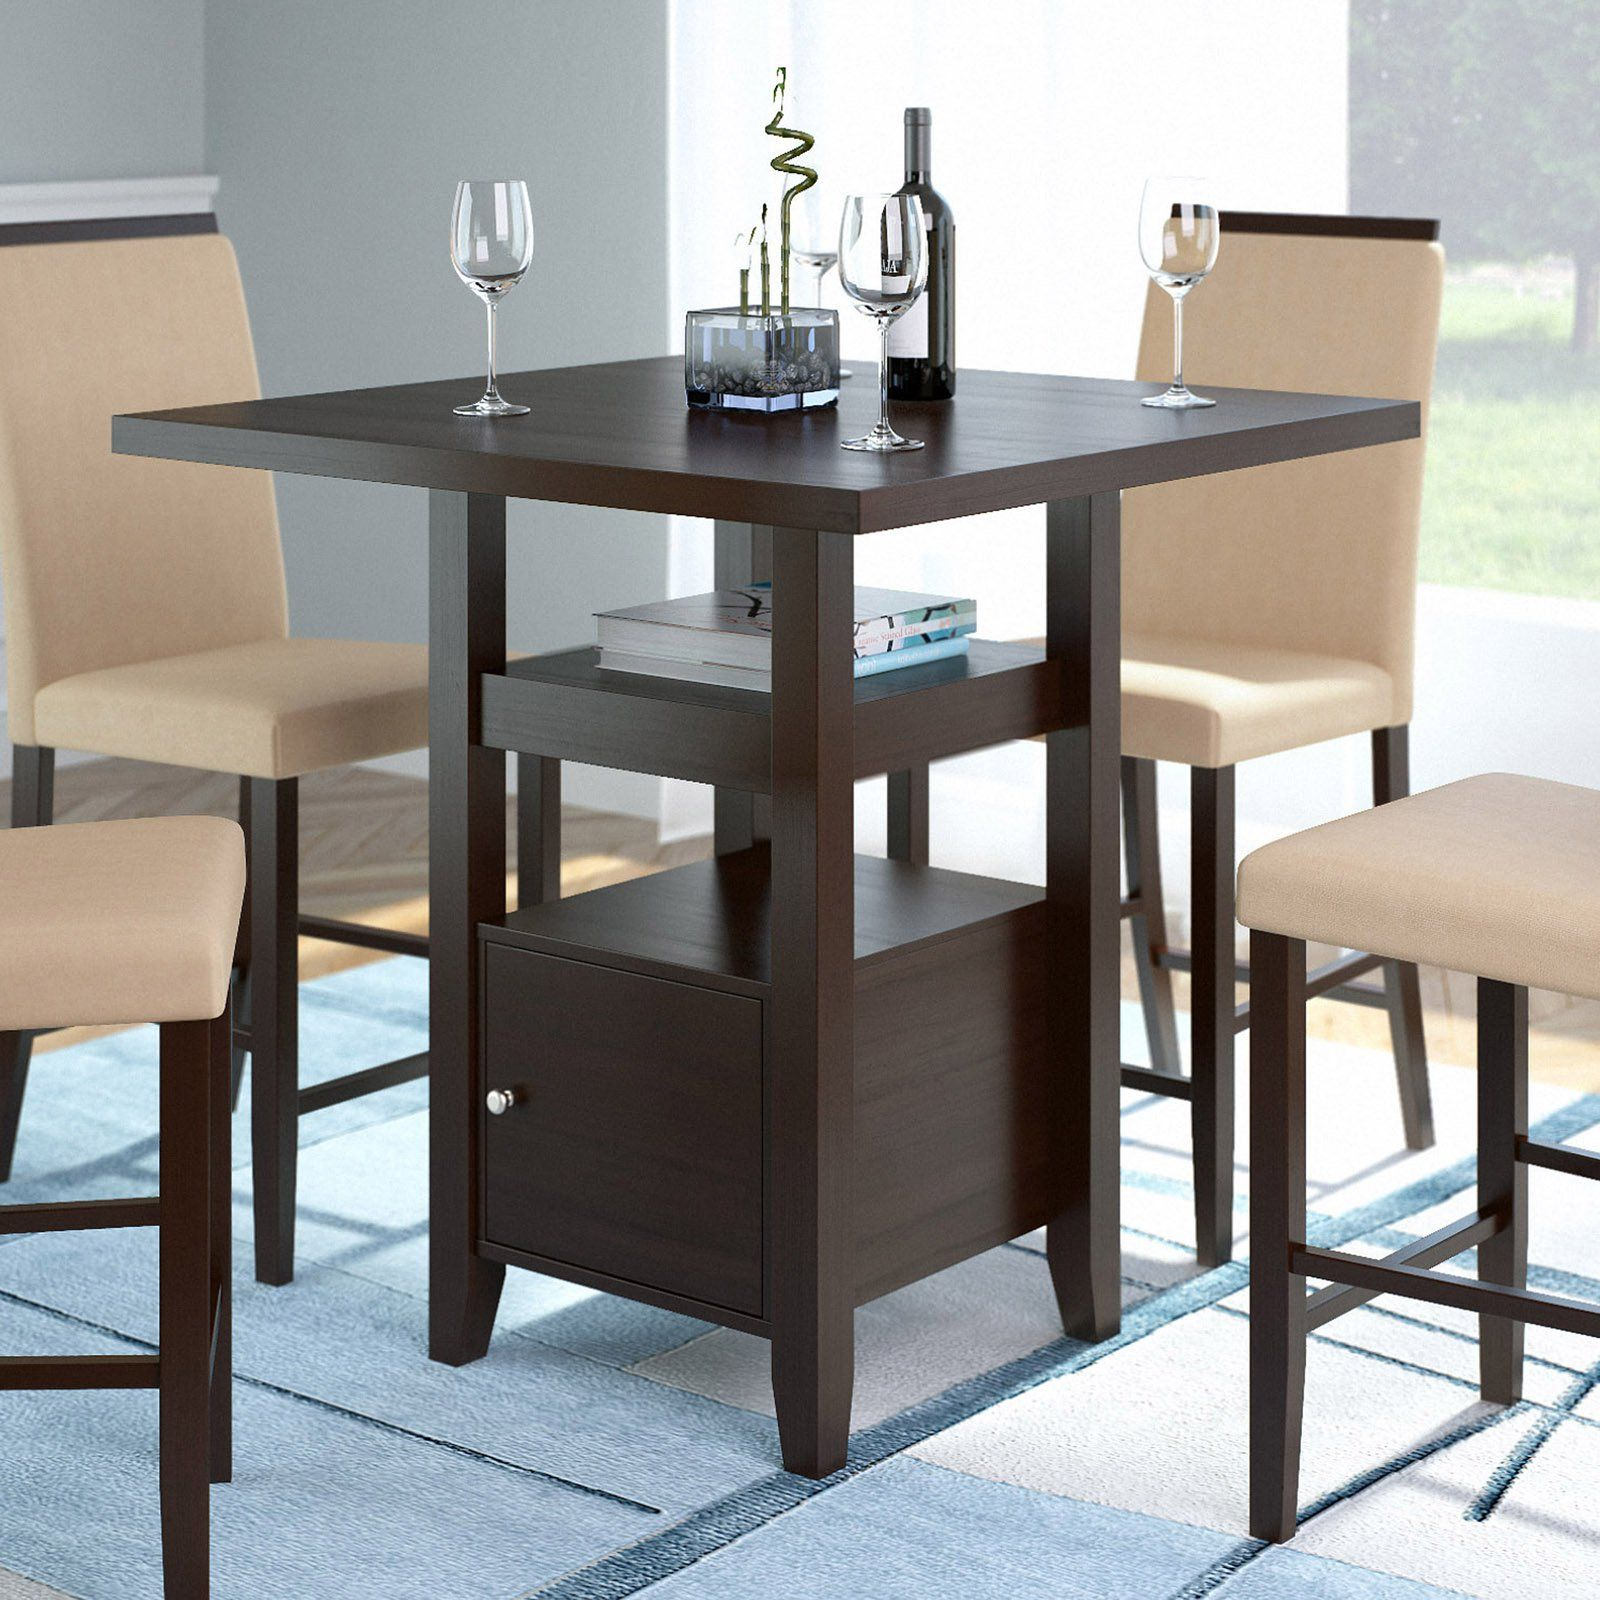 Corliving Bistro Counter Height Dining Table With Cabinet Cappuccino Counter Height Dining Table Counter Height Table Pub Table Sets